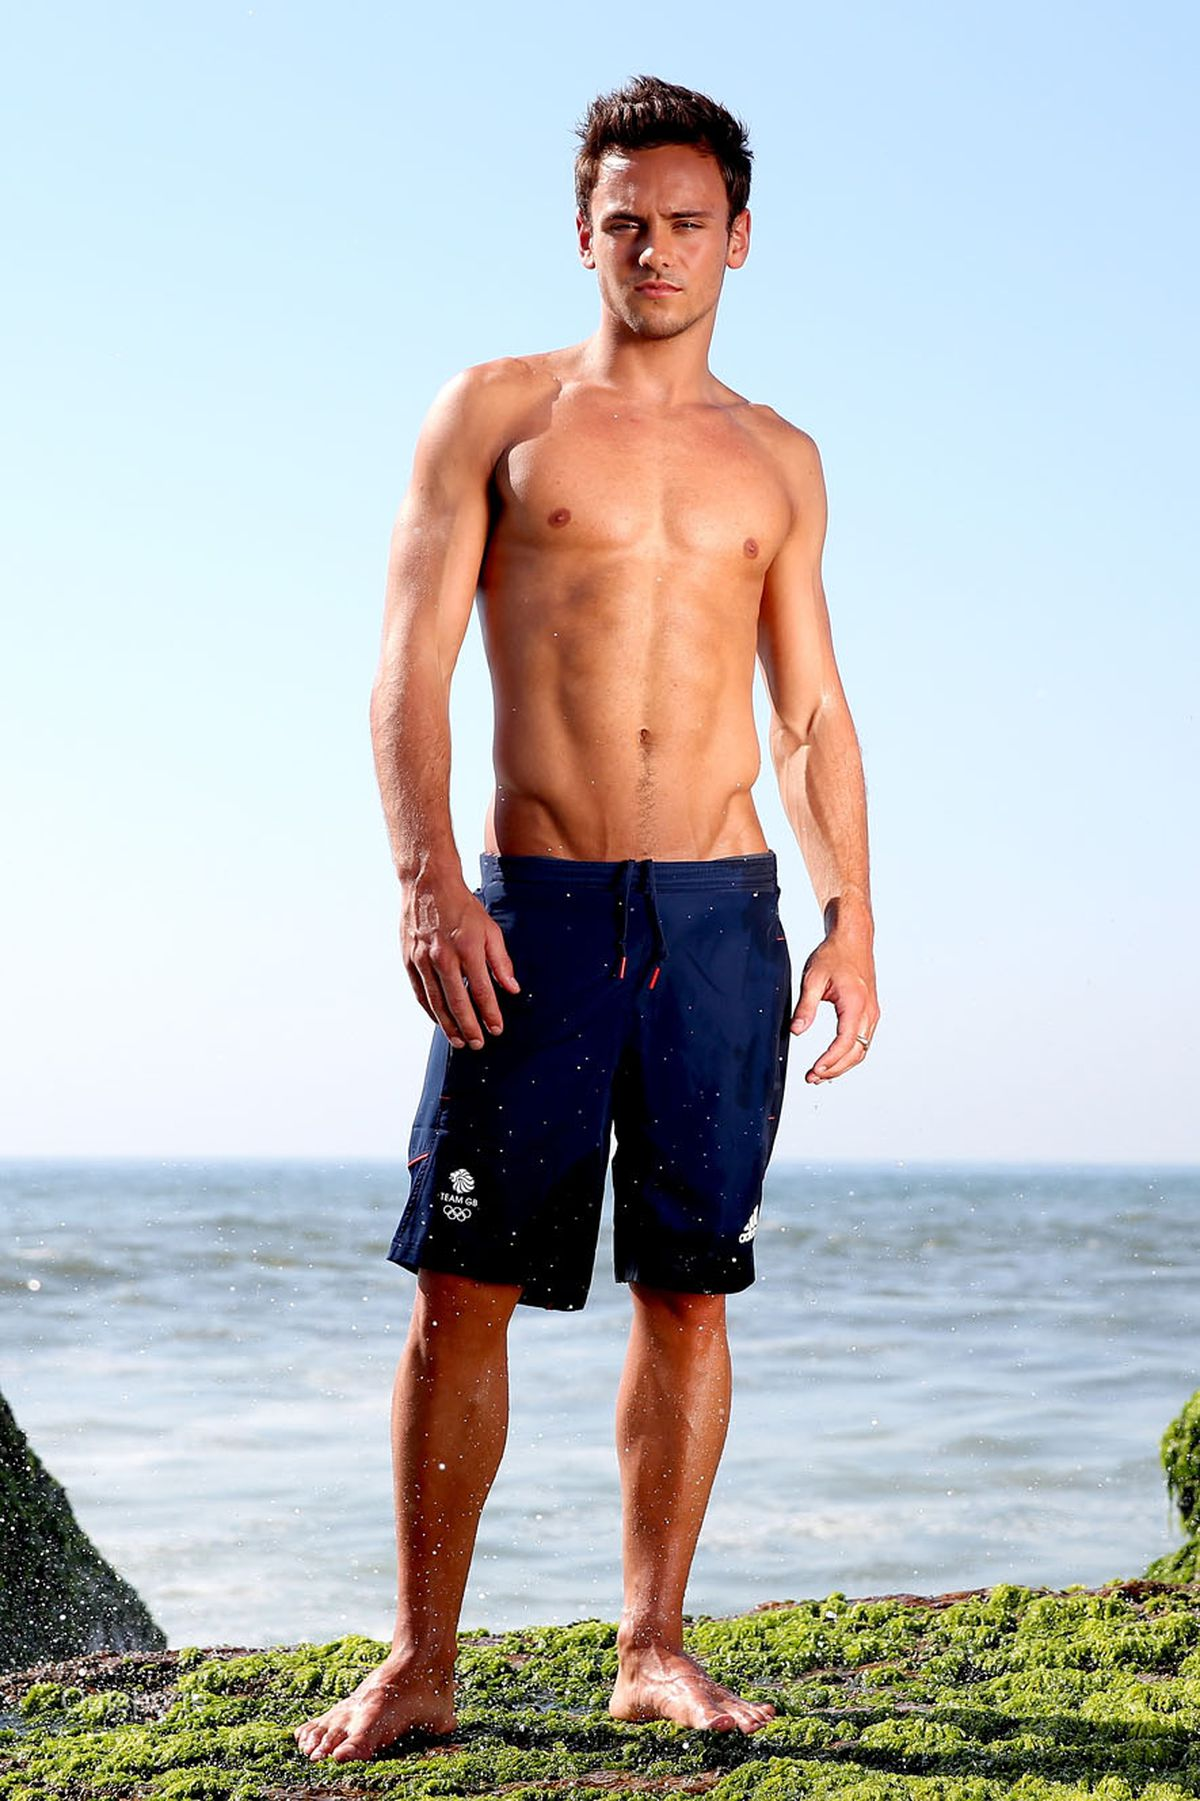 Tom Daley Looking Studly In Rio Photo Shoot - Outsports-7544